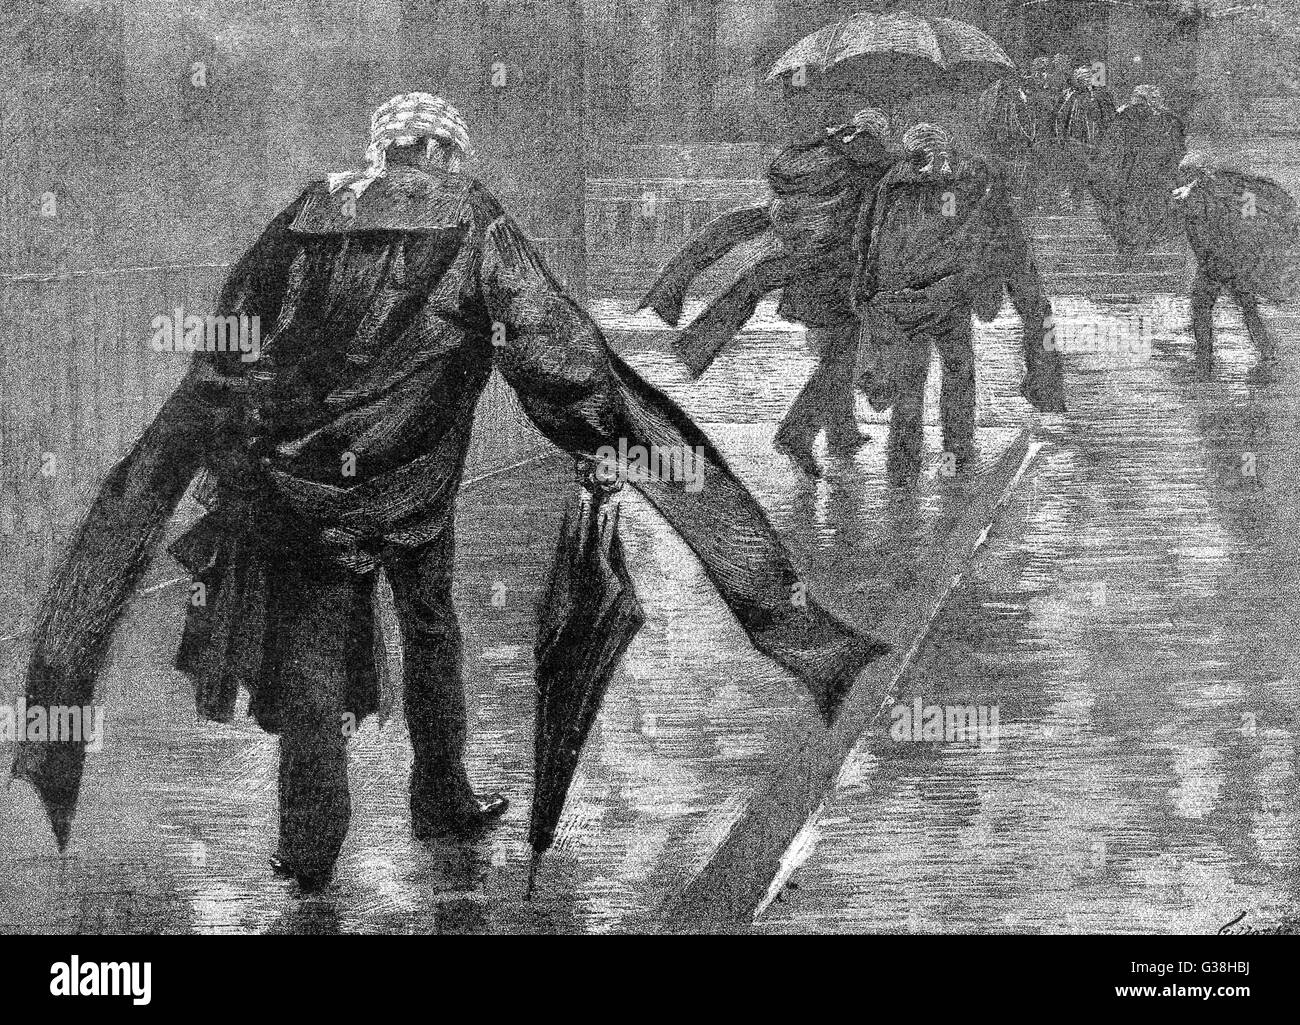 Barristers make their way  through the rain along Carey  Street from the Inns of Court  to the London Law Courts, - Stock Image